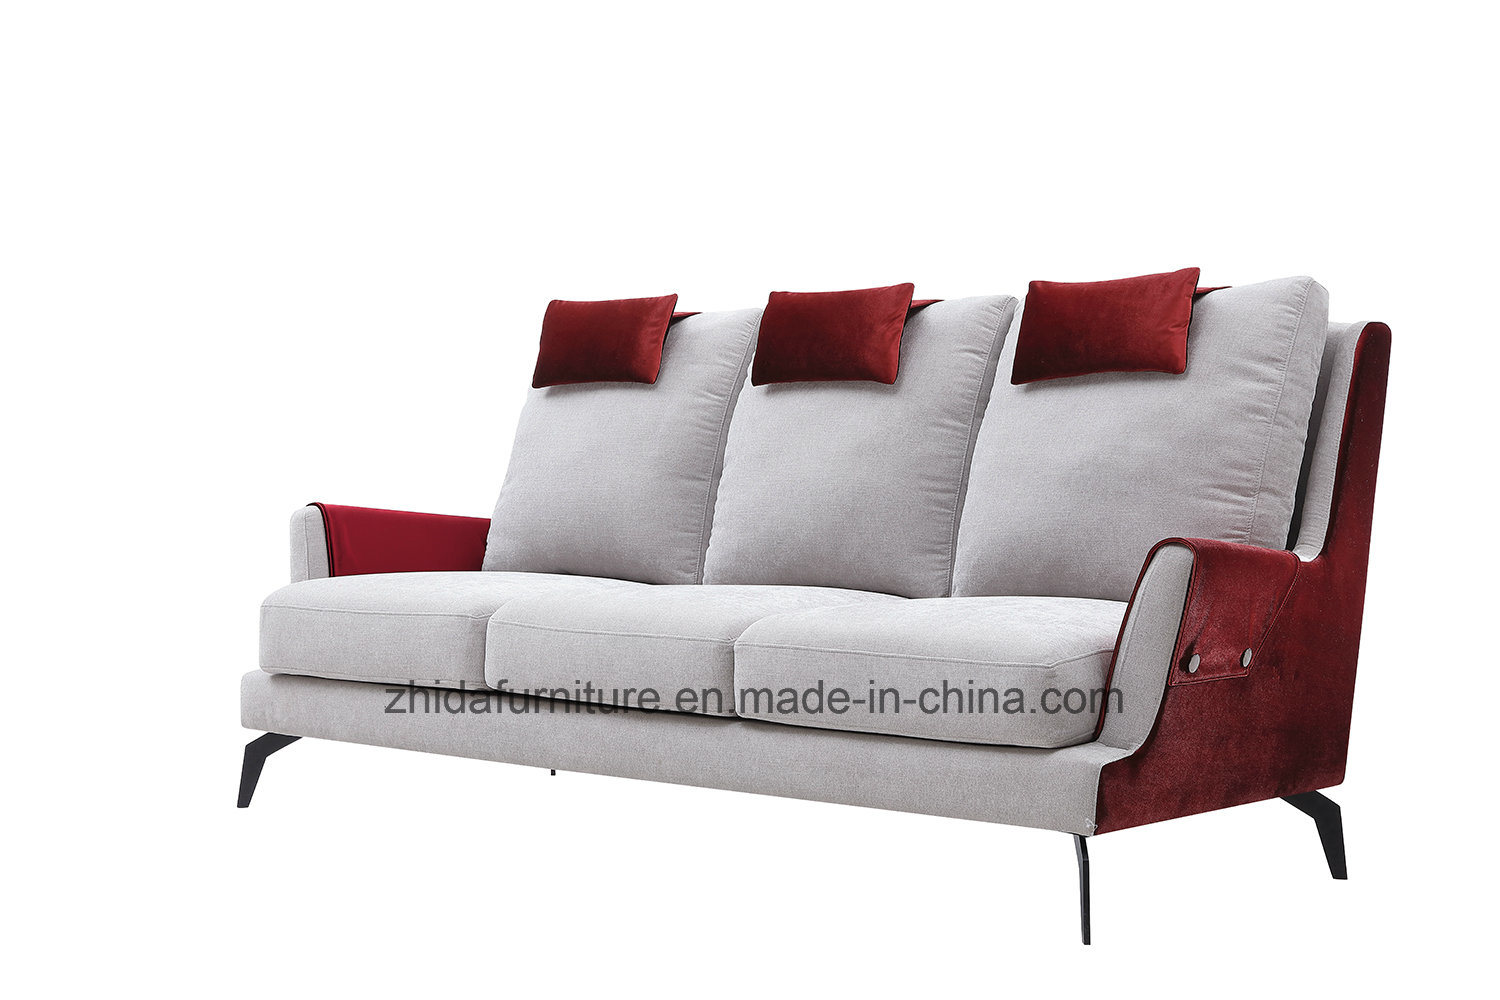 Phenomenal Hot Item New Design Small Size Fabric Sofa Set For Living Room Sofa Pdpeps Interior Chair Design Pdpepsorg